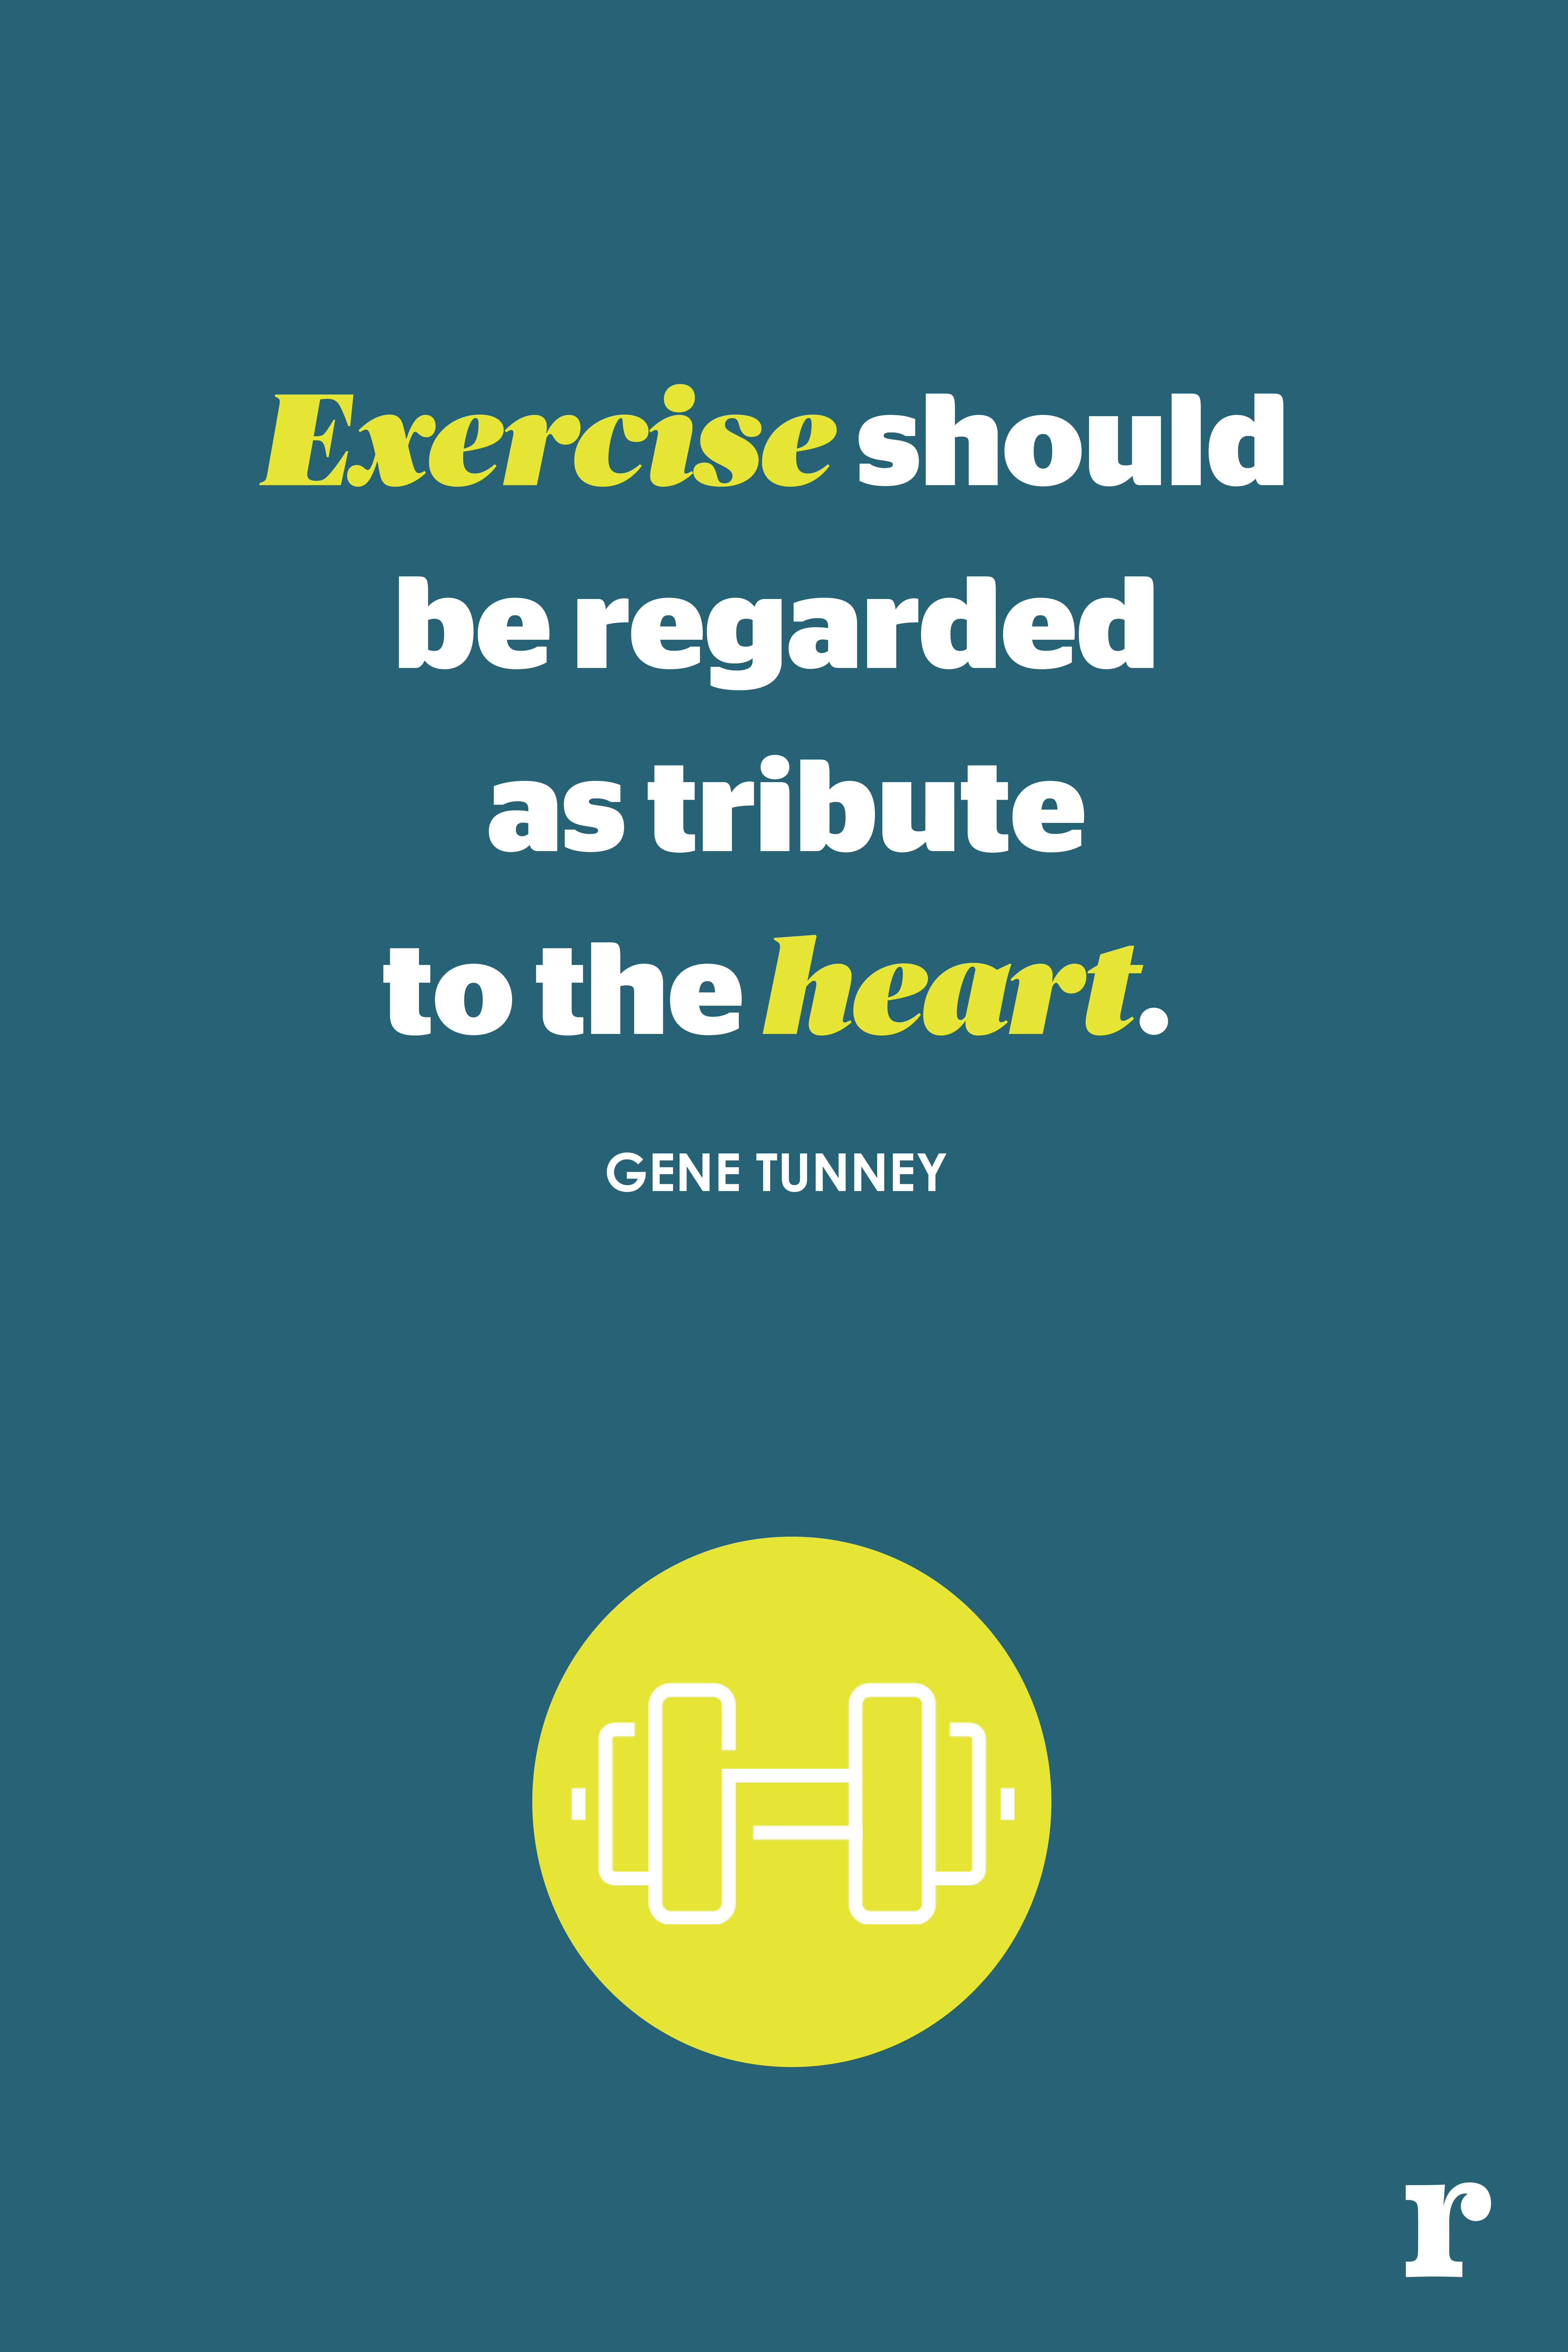 12 Best Fitness Quotes Inspirational Workout Motivation Quotes